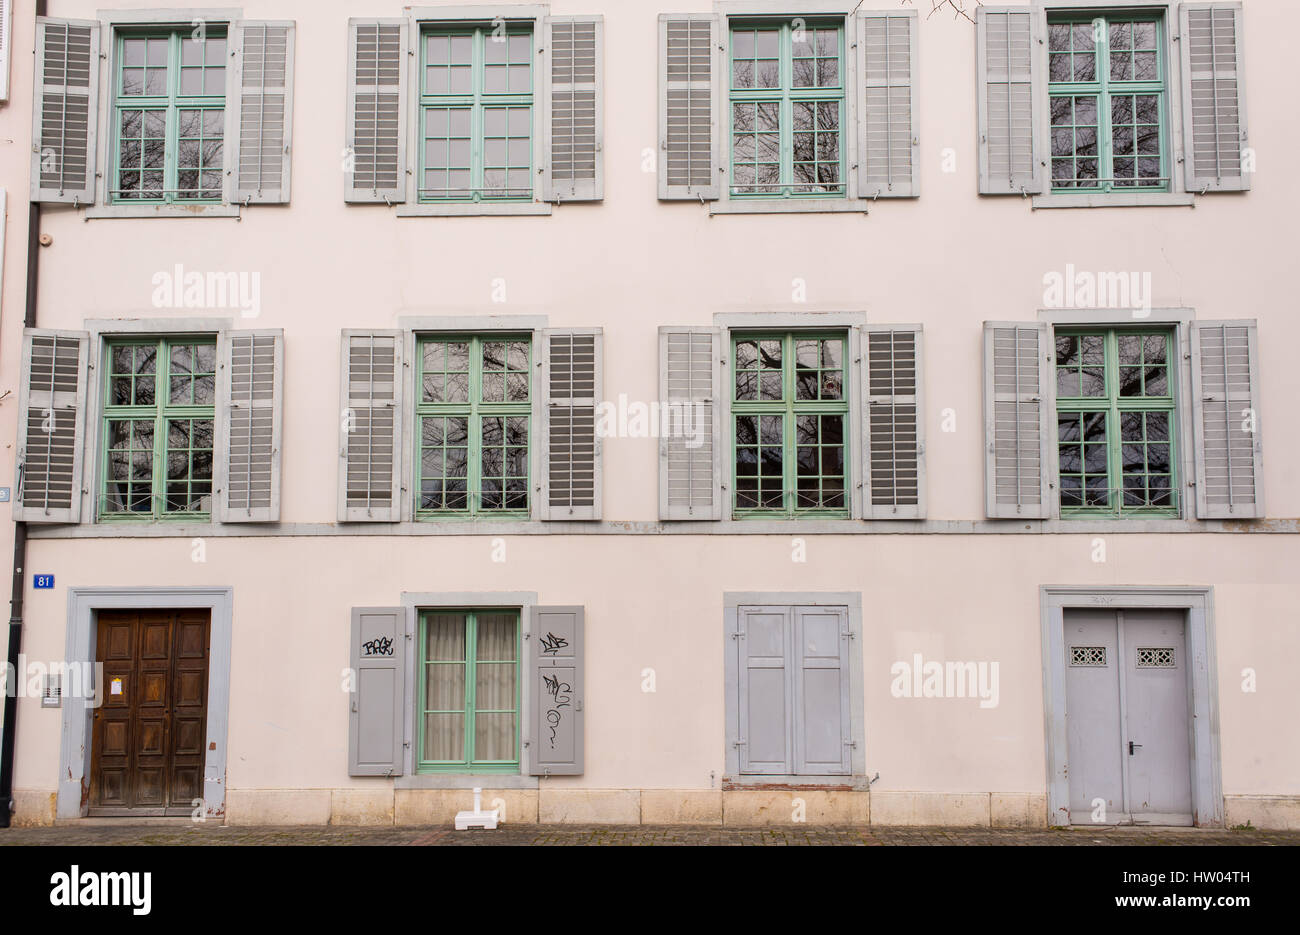 Facade of an old typical Swiss medieval house in pastel coulours in Basel old town, Altstadt Grossbasel, Switzerland. Stock Photo